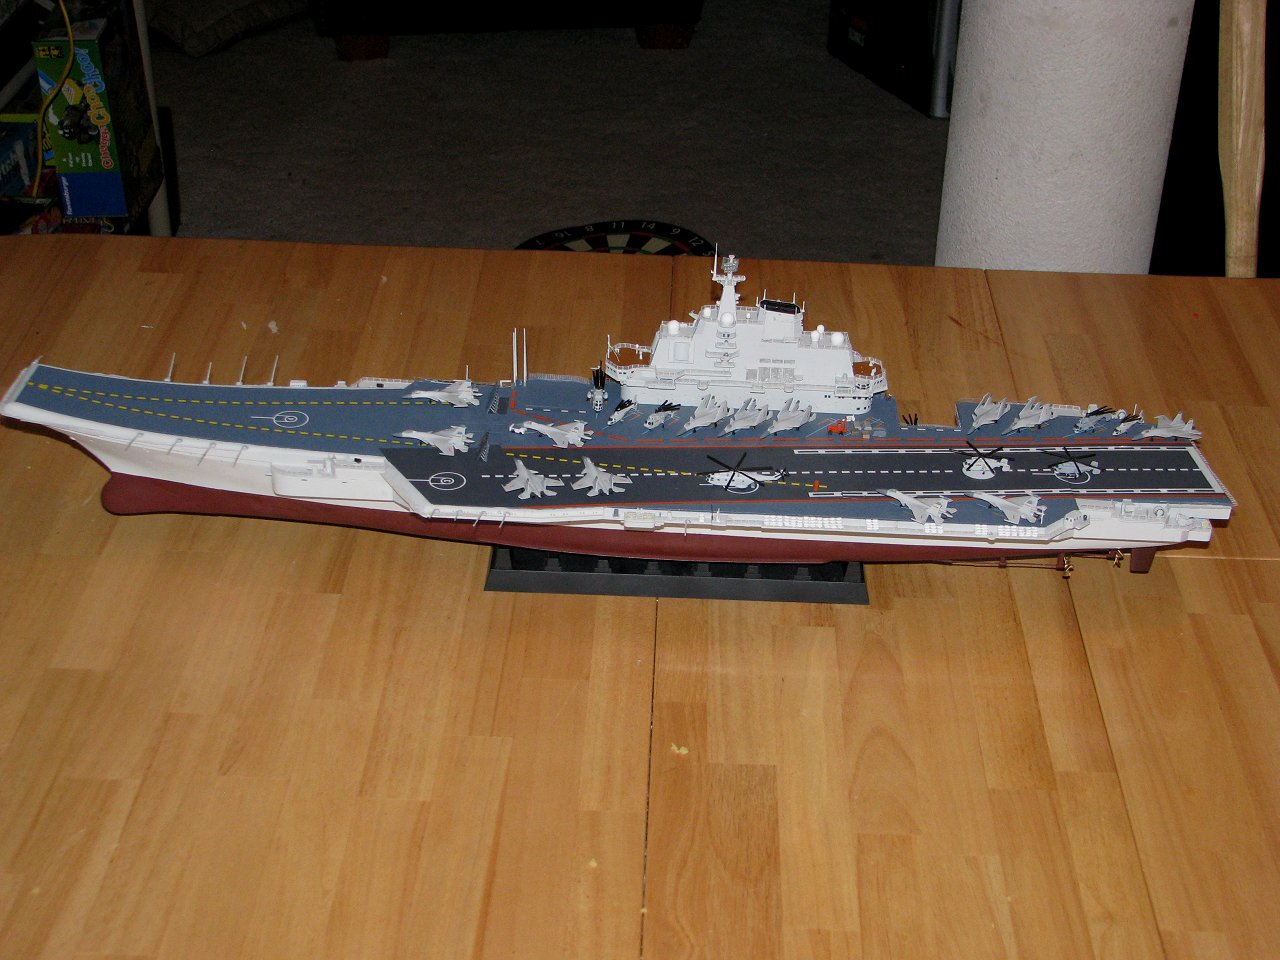 Aircraft carrier models large scale - Pla Aircraft Carrier Modified To Commissioned Appearance And Completed December 27